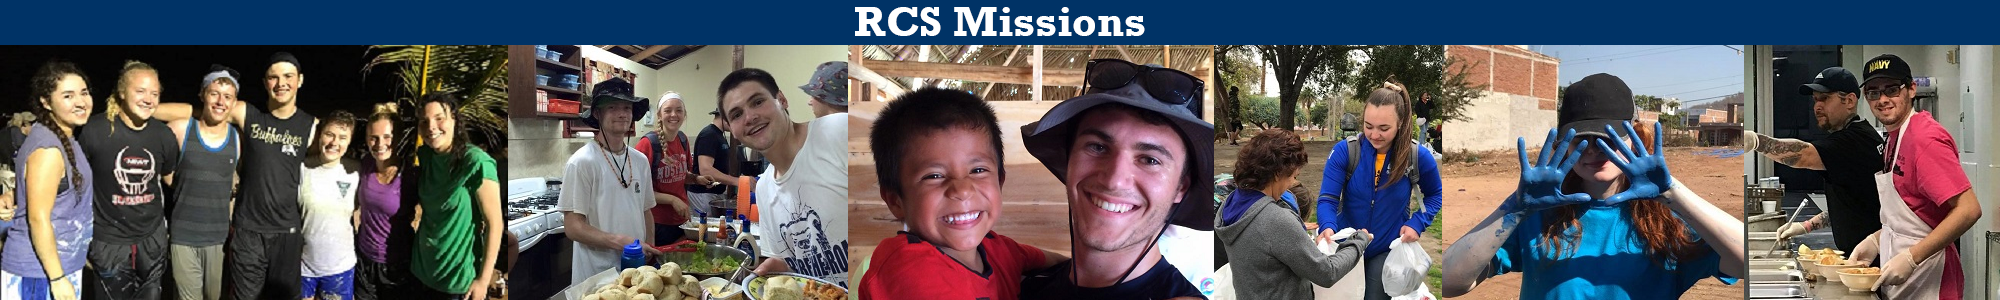 Banner Image for - RCS Missions